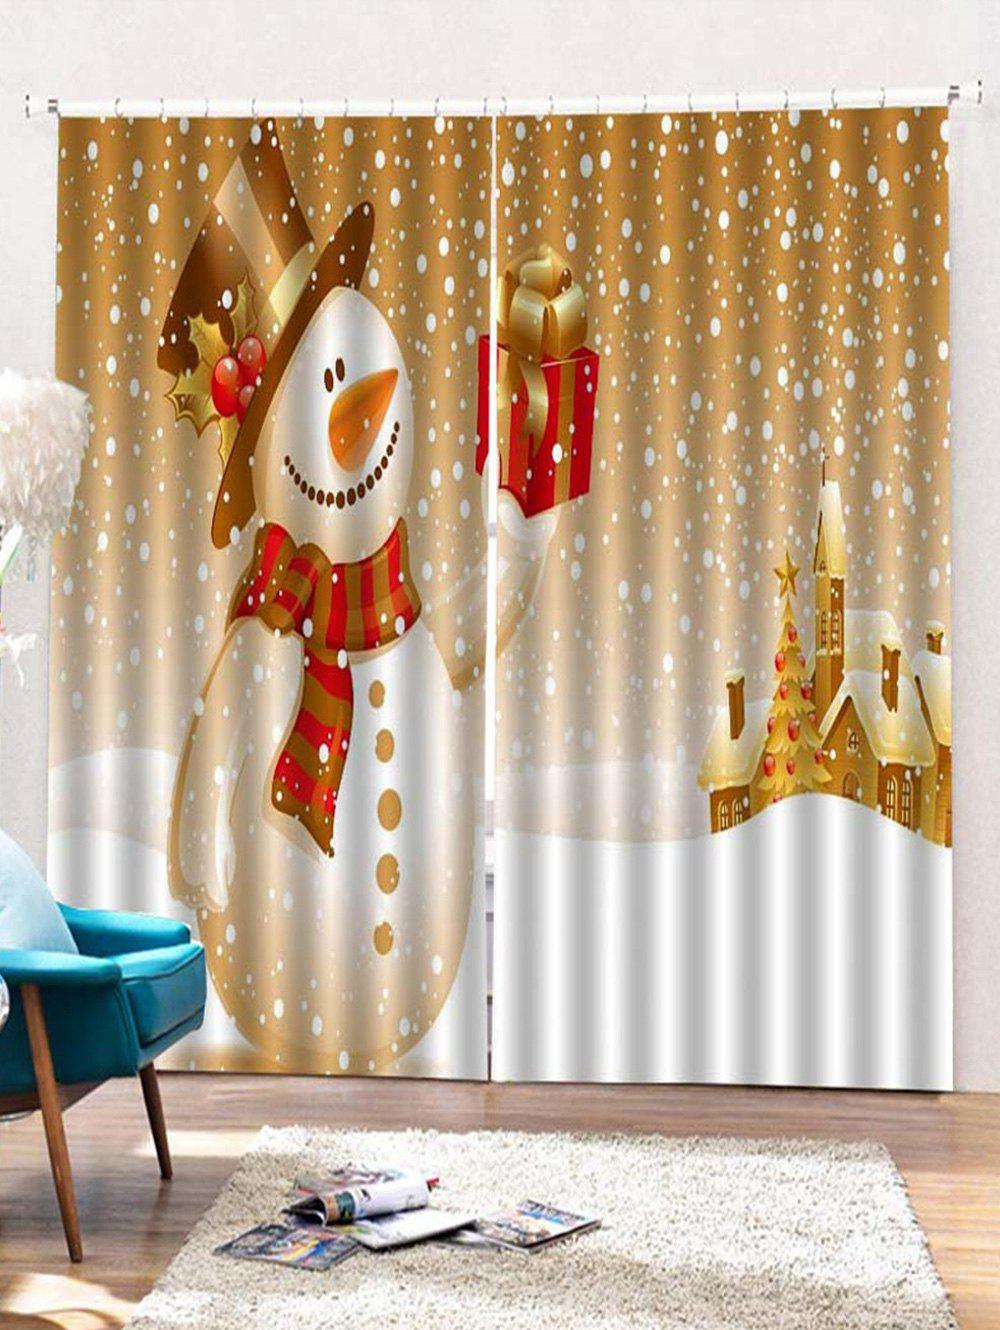 2PCS Christmas Snowman Gift Printed Window Curtains - GOLDEN BROWN W30 X L65 INCH X 2PCS